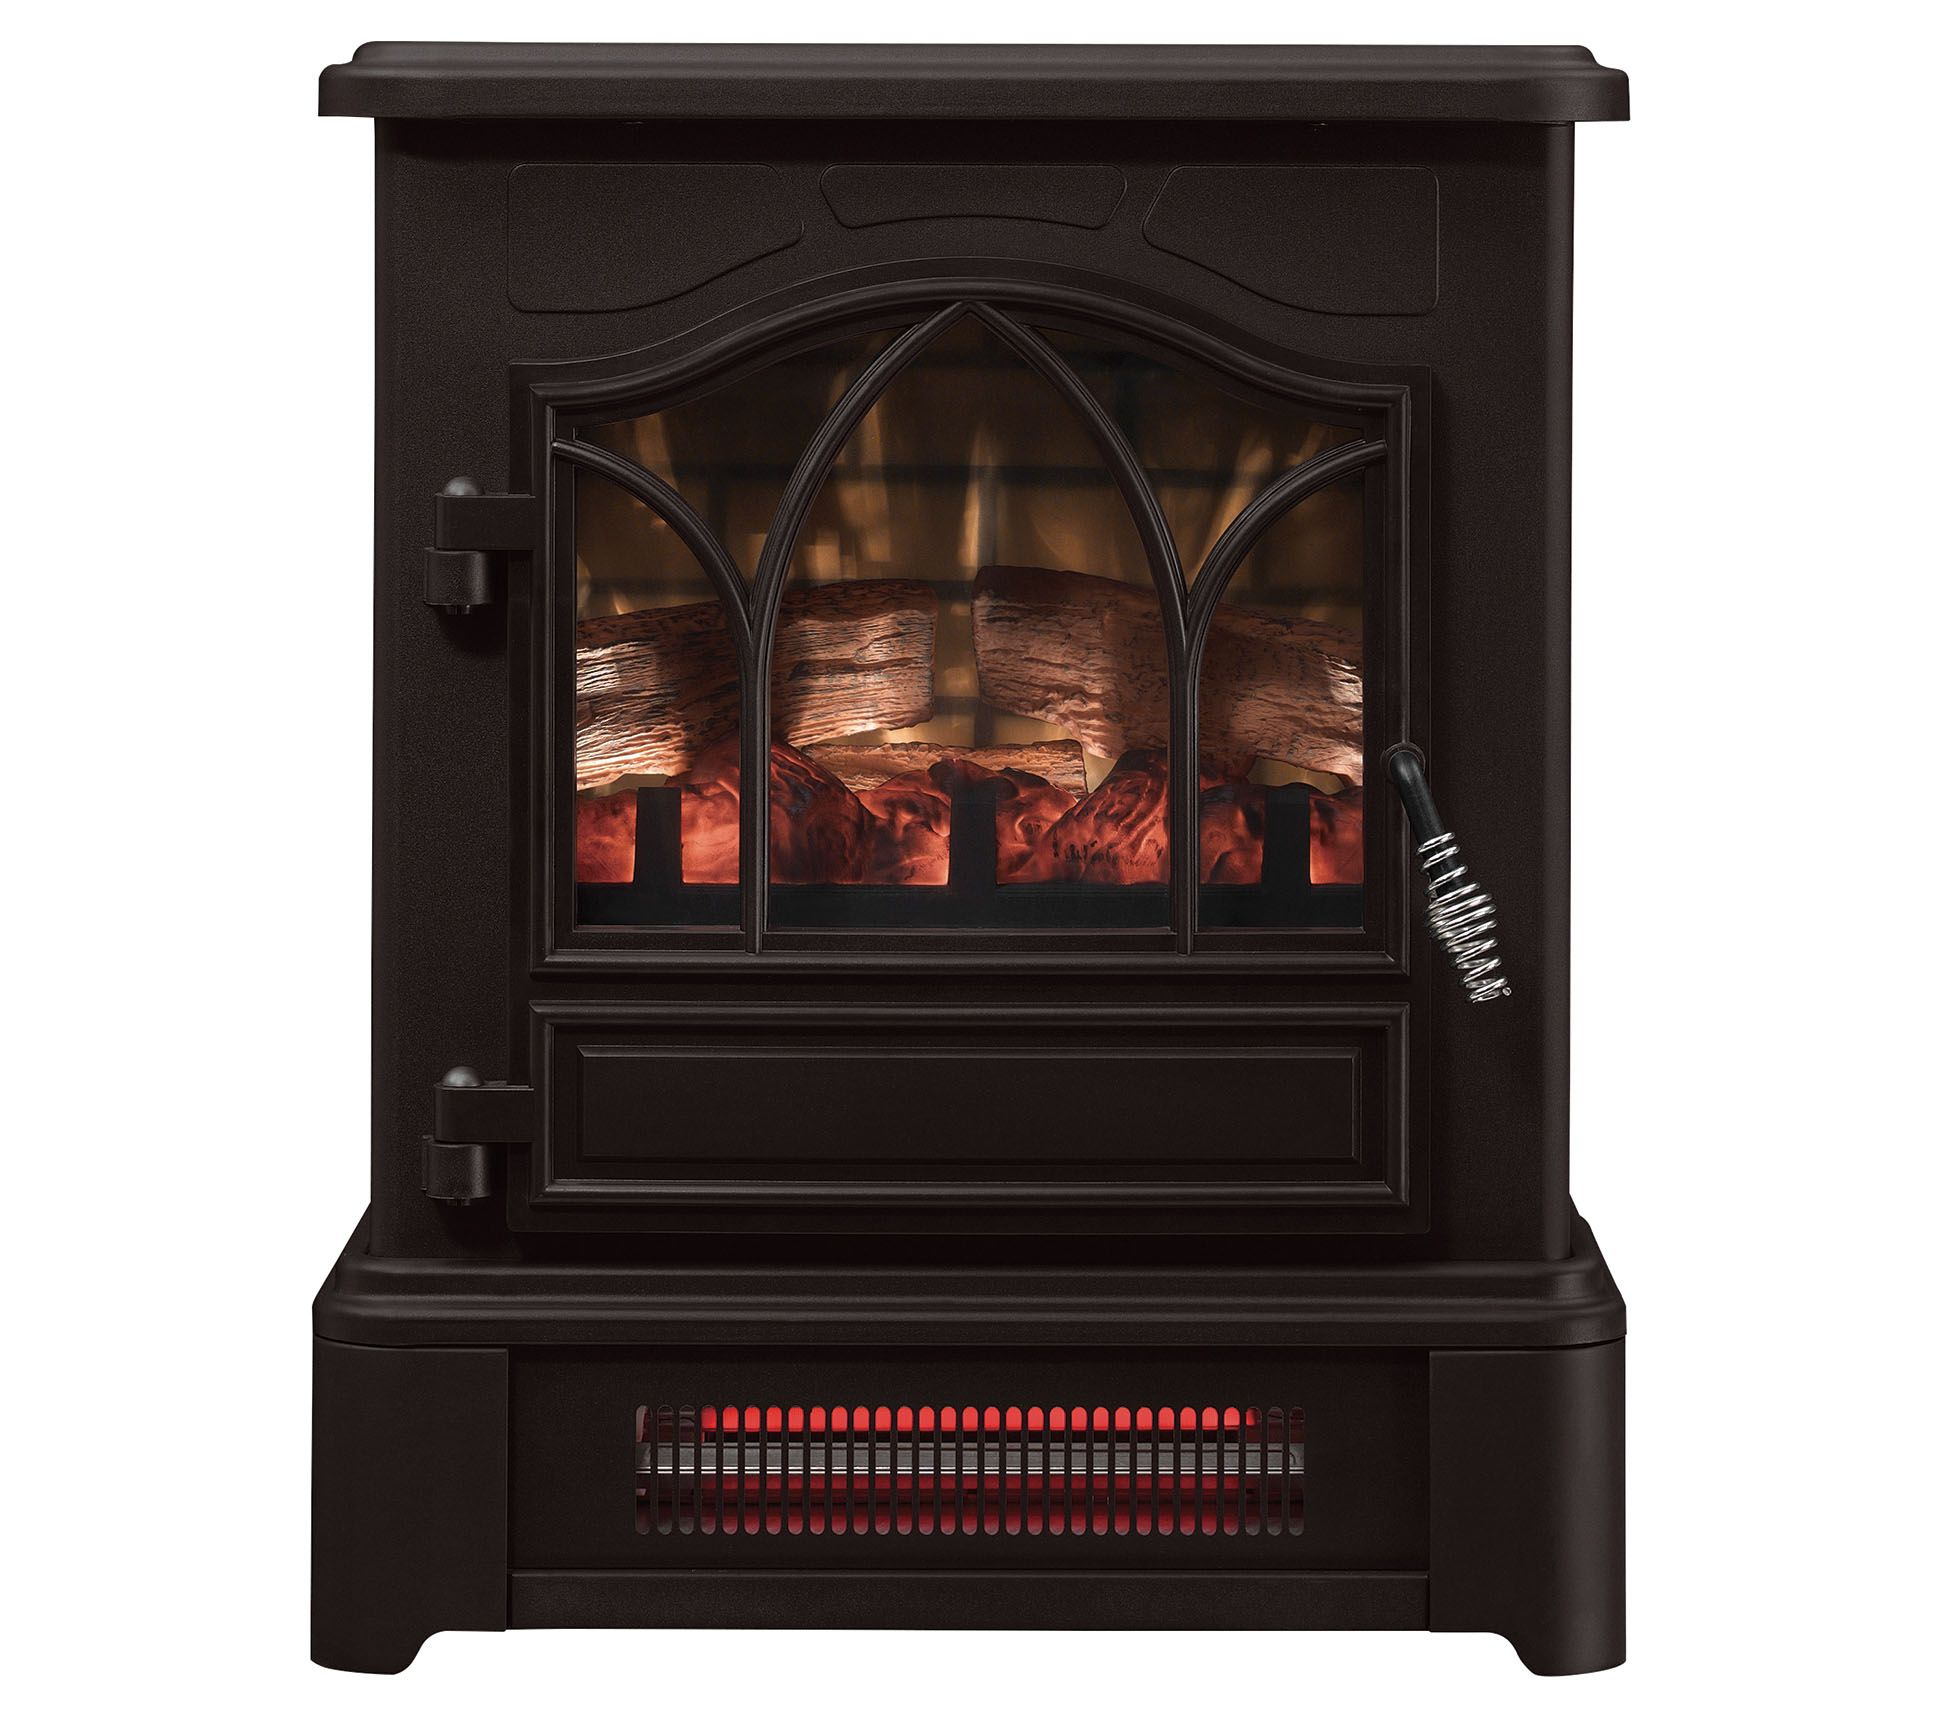 v35030.001 duraflame portable fireplaces & electric heaters for the home  at readyjetset.co